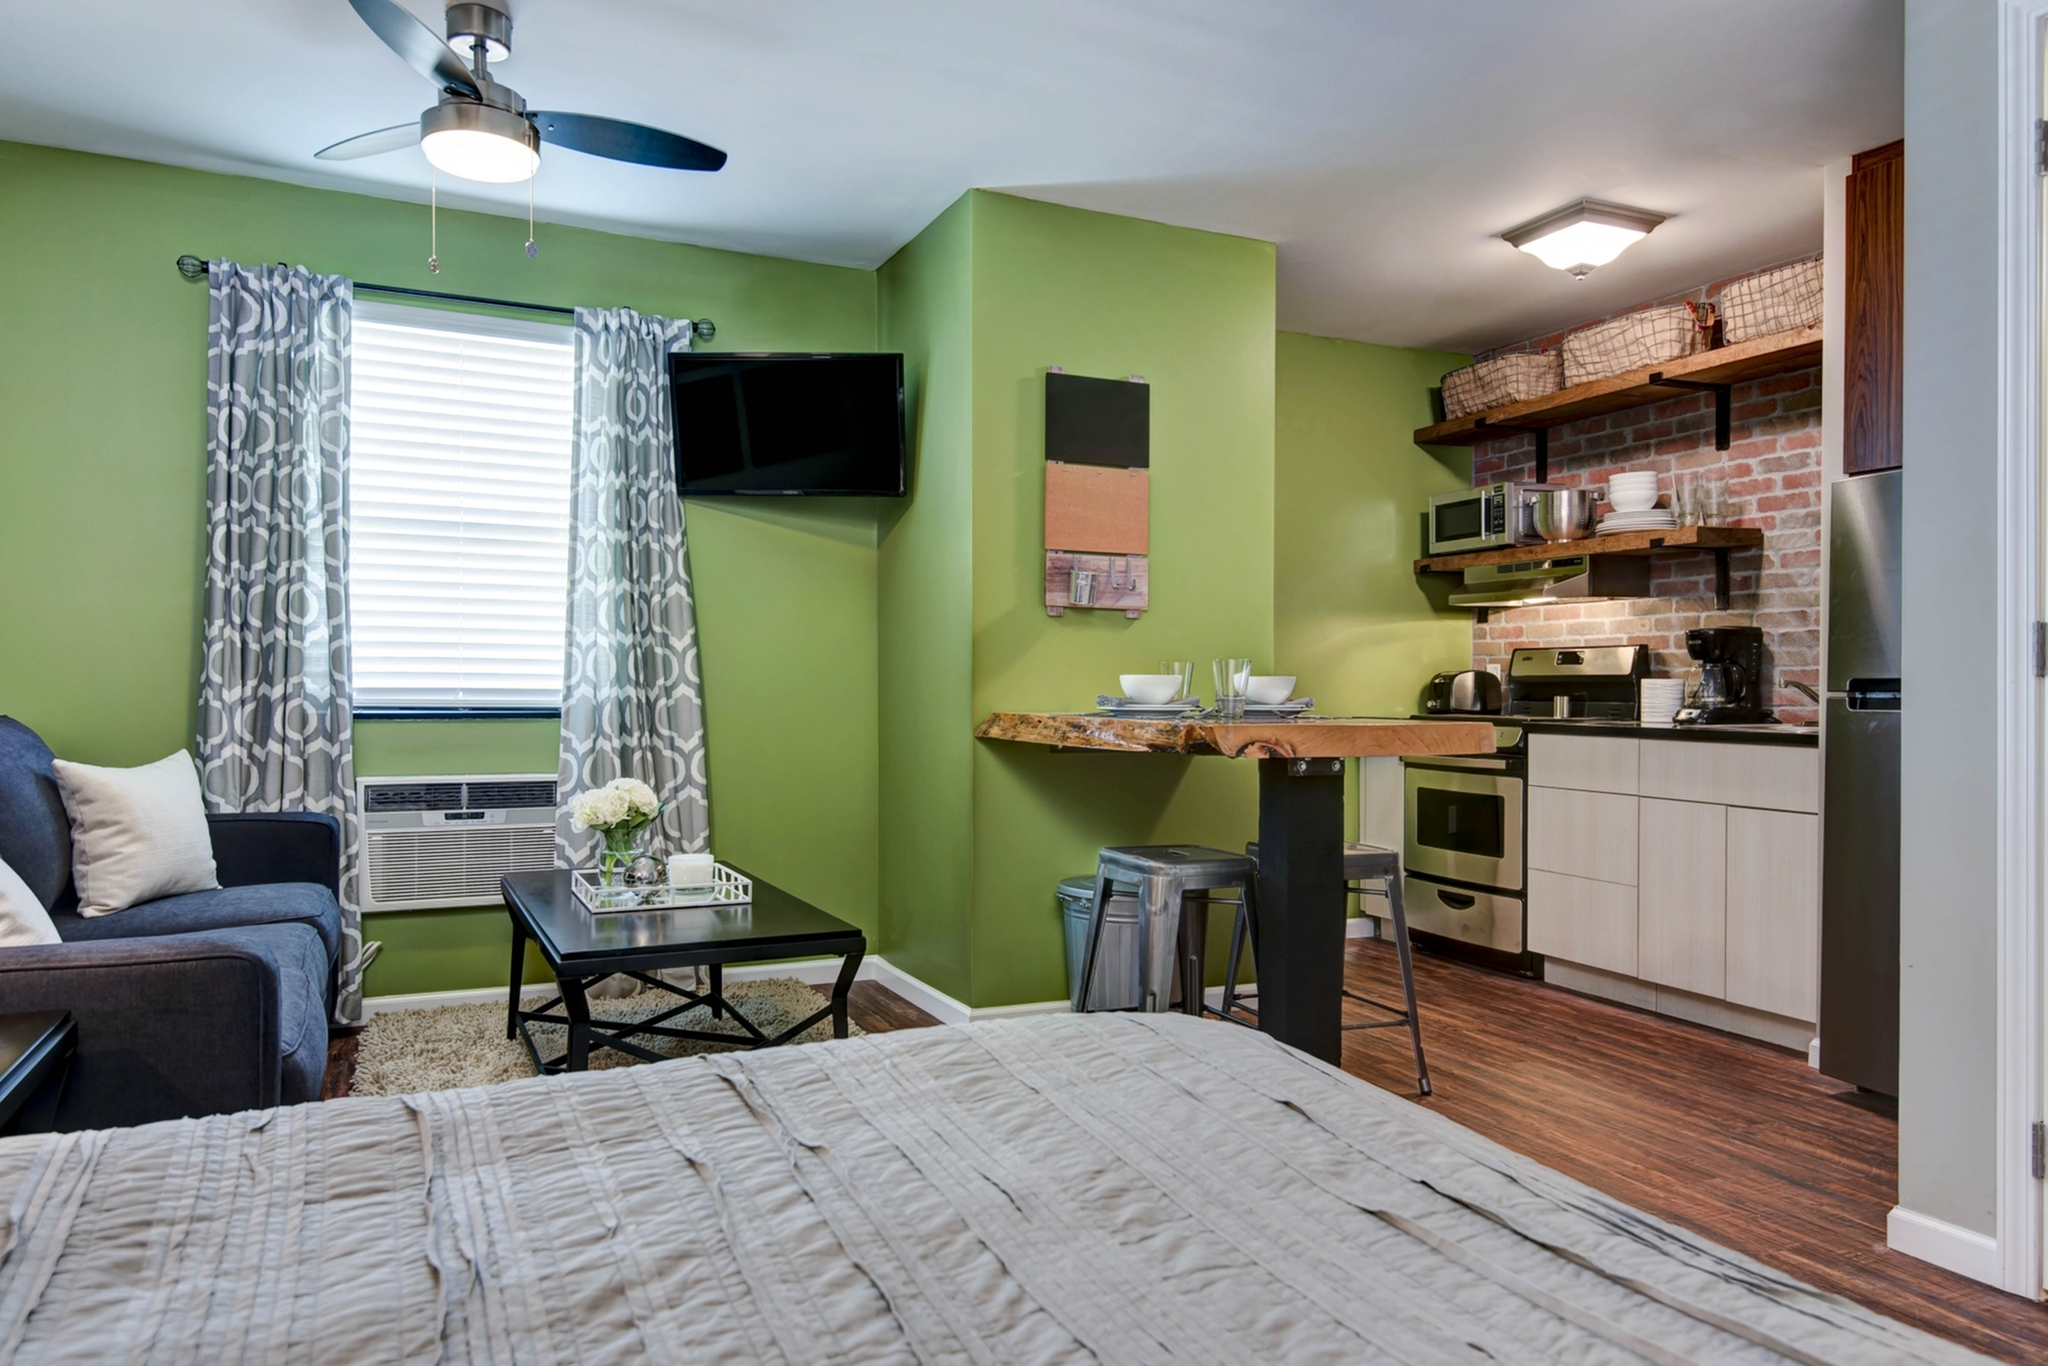 studio apartment with bed, couch and kitchen with exposed brick